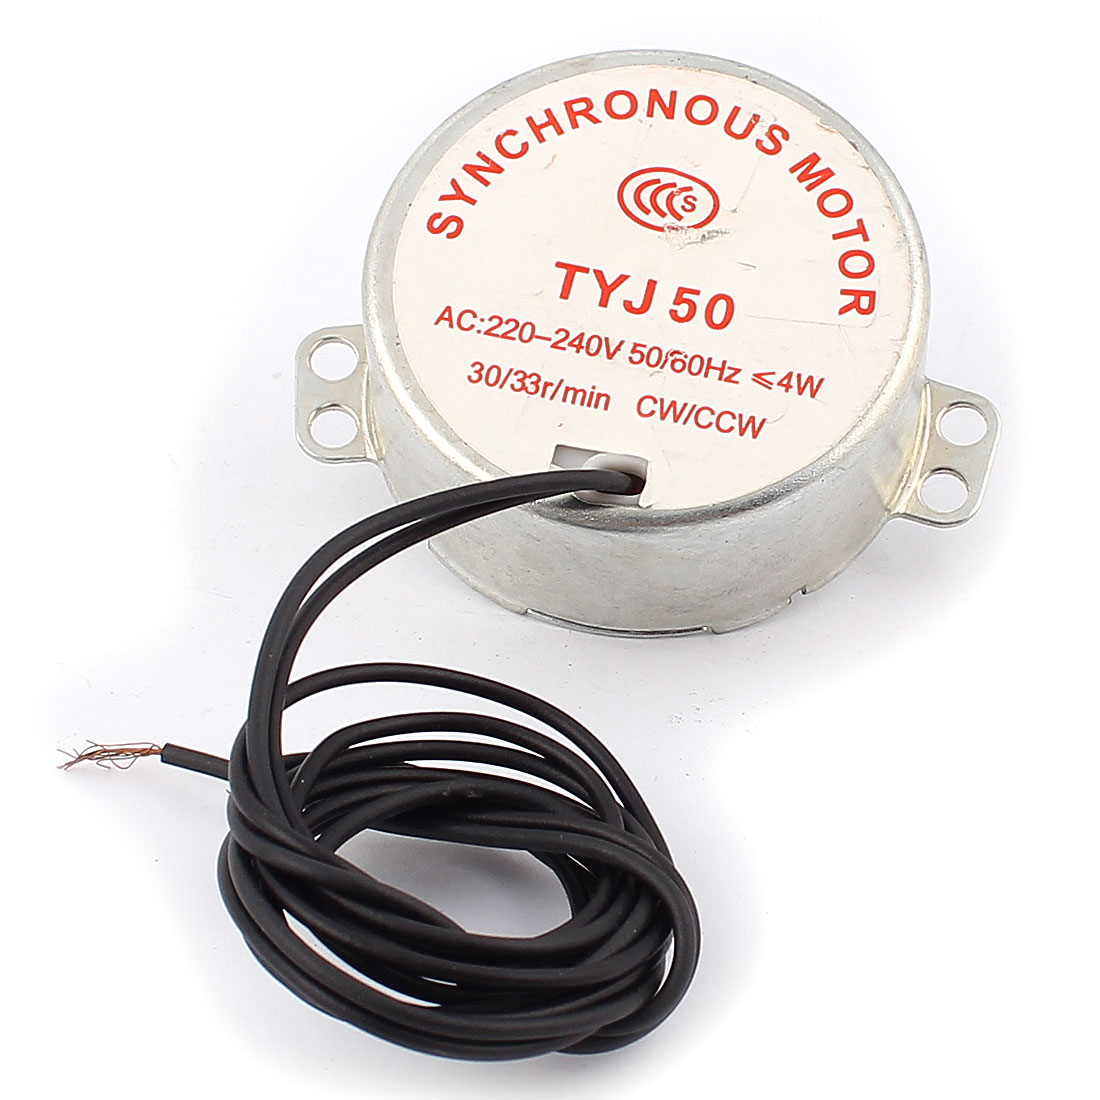 TYJ50 AC 220V-240V 30/33r/min CW/CCW Synchronous Reduction Electric Gear Motor